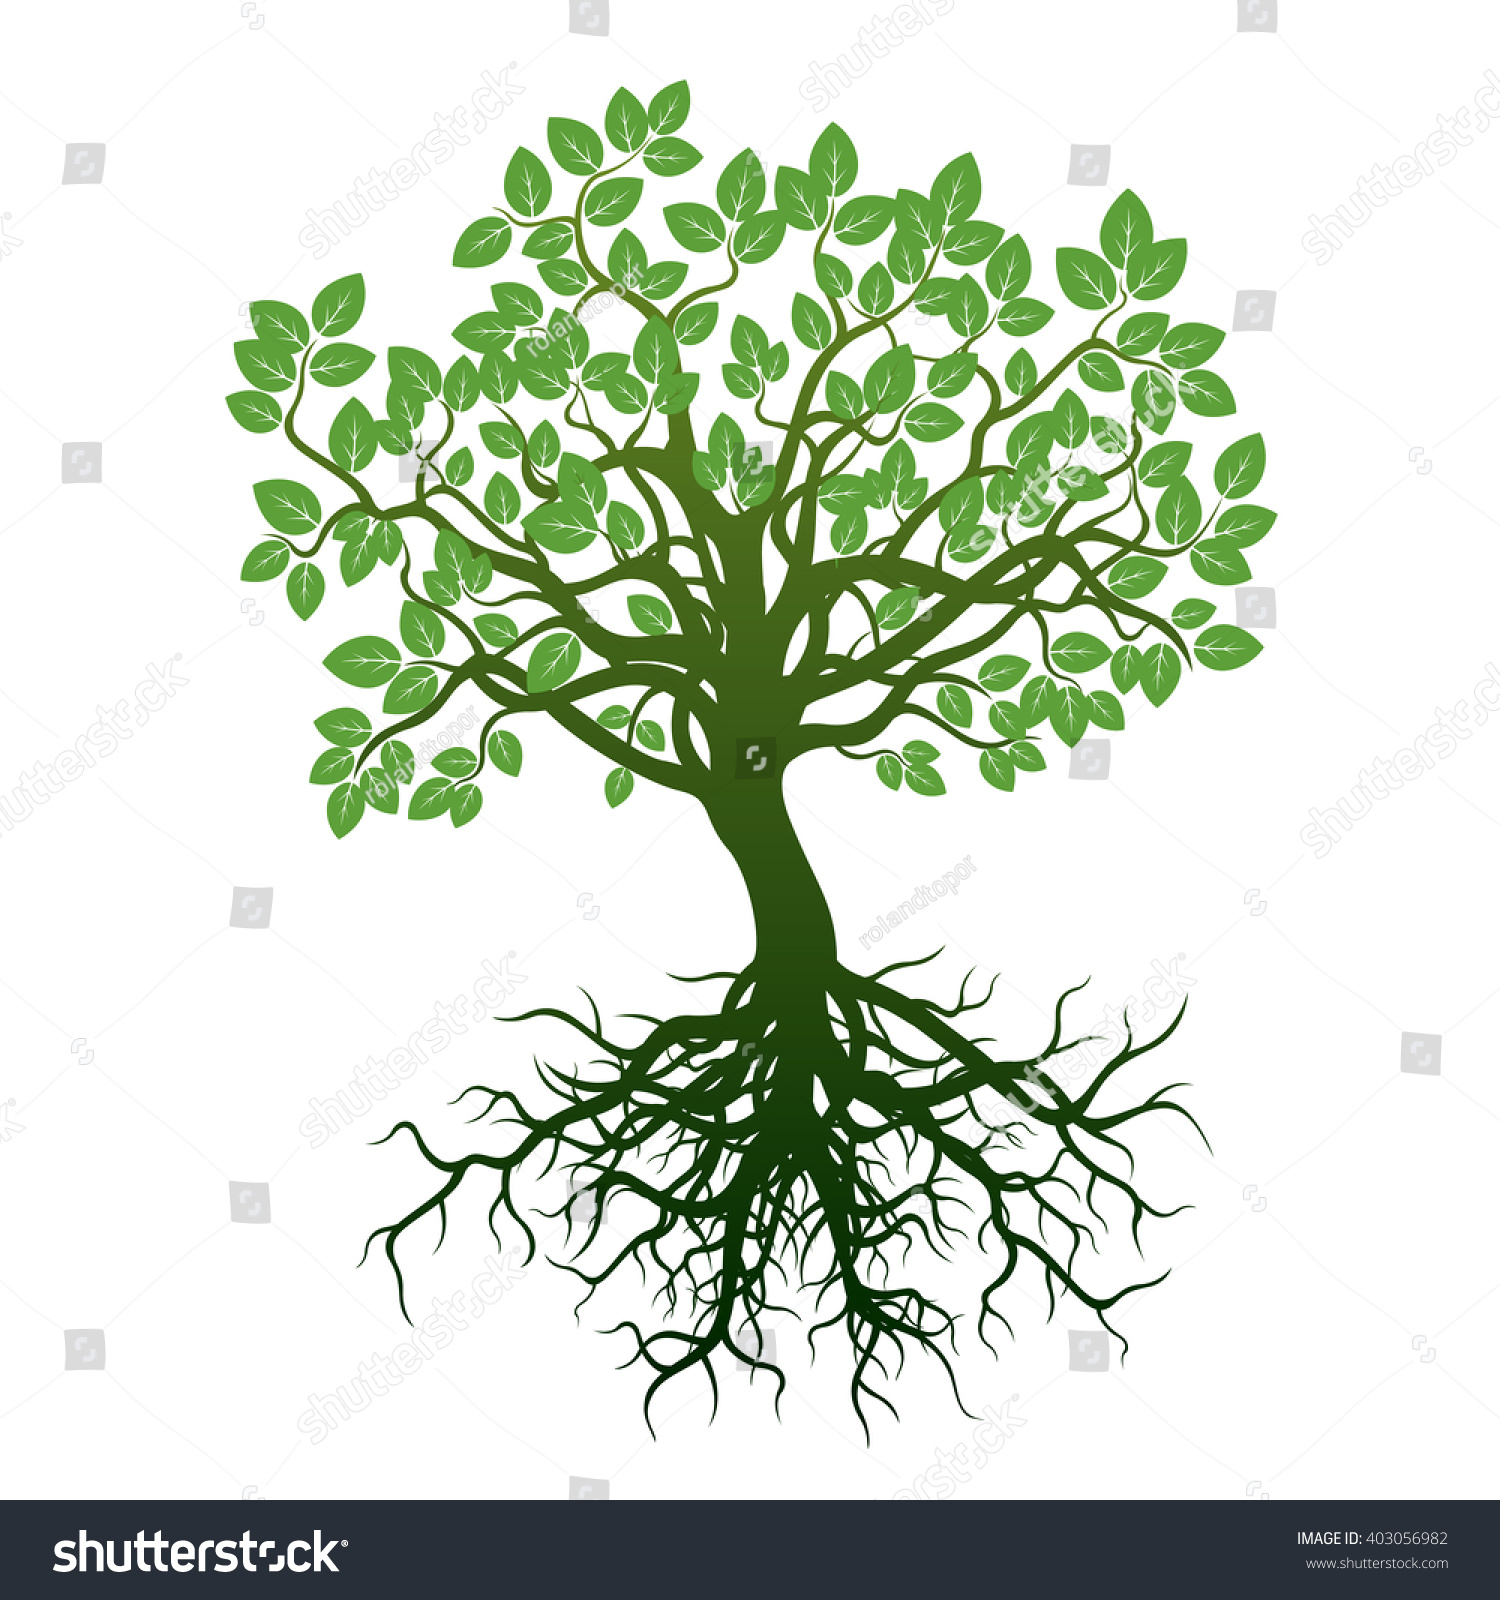 Color Tree Roots Vector Illustration Stock Vector HD (Royalty Free ...